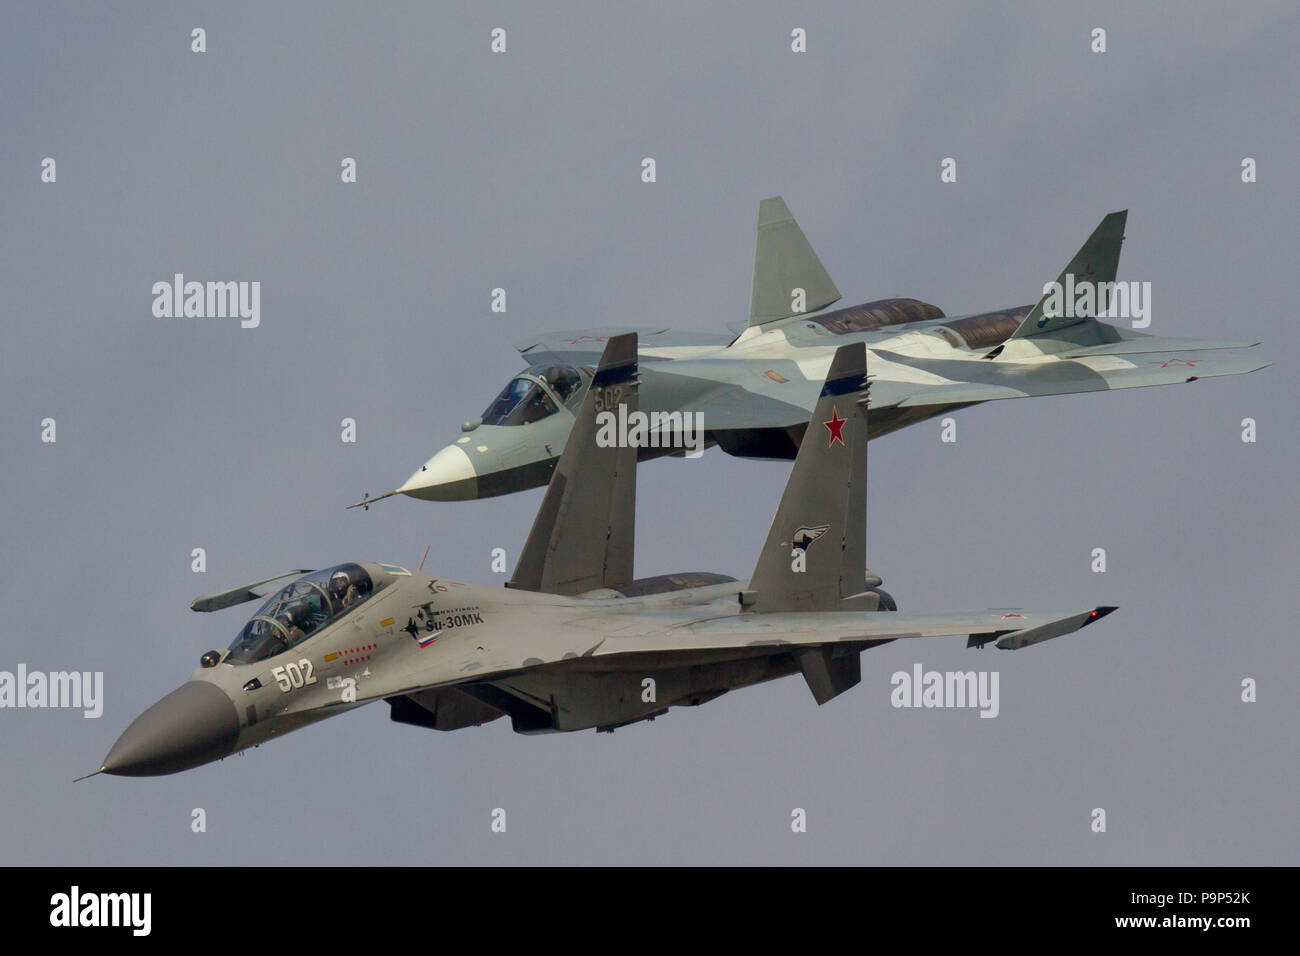 Sukhoi T-50 and Sukhoi Su-30MK jet fighters of Russian Air Force fly in formation at MAKS-2013 International Airshow near Zhukovsky, Russia Stock Photo